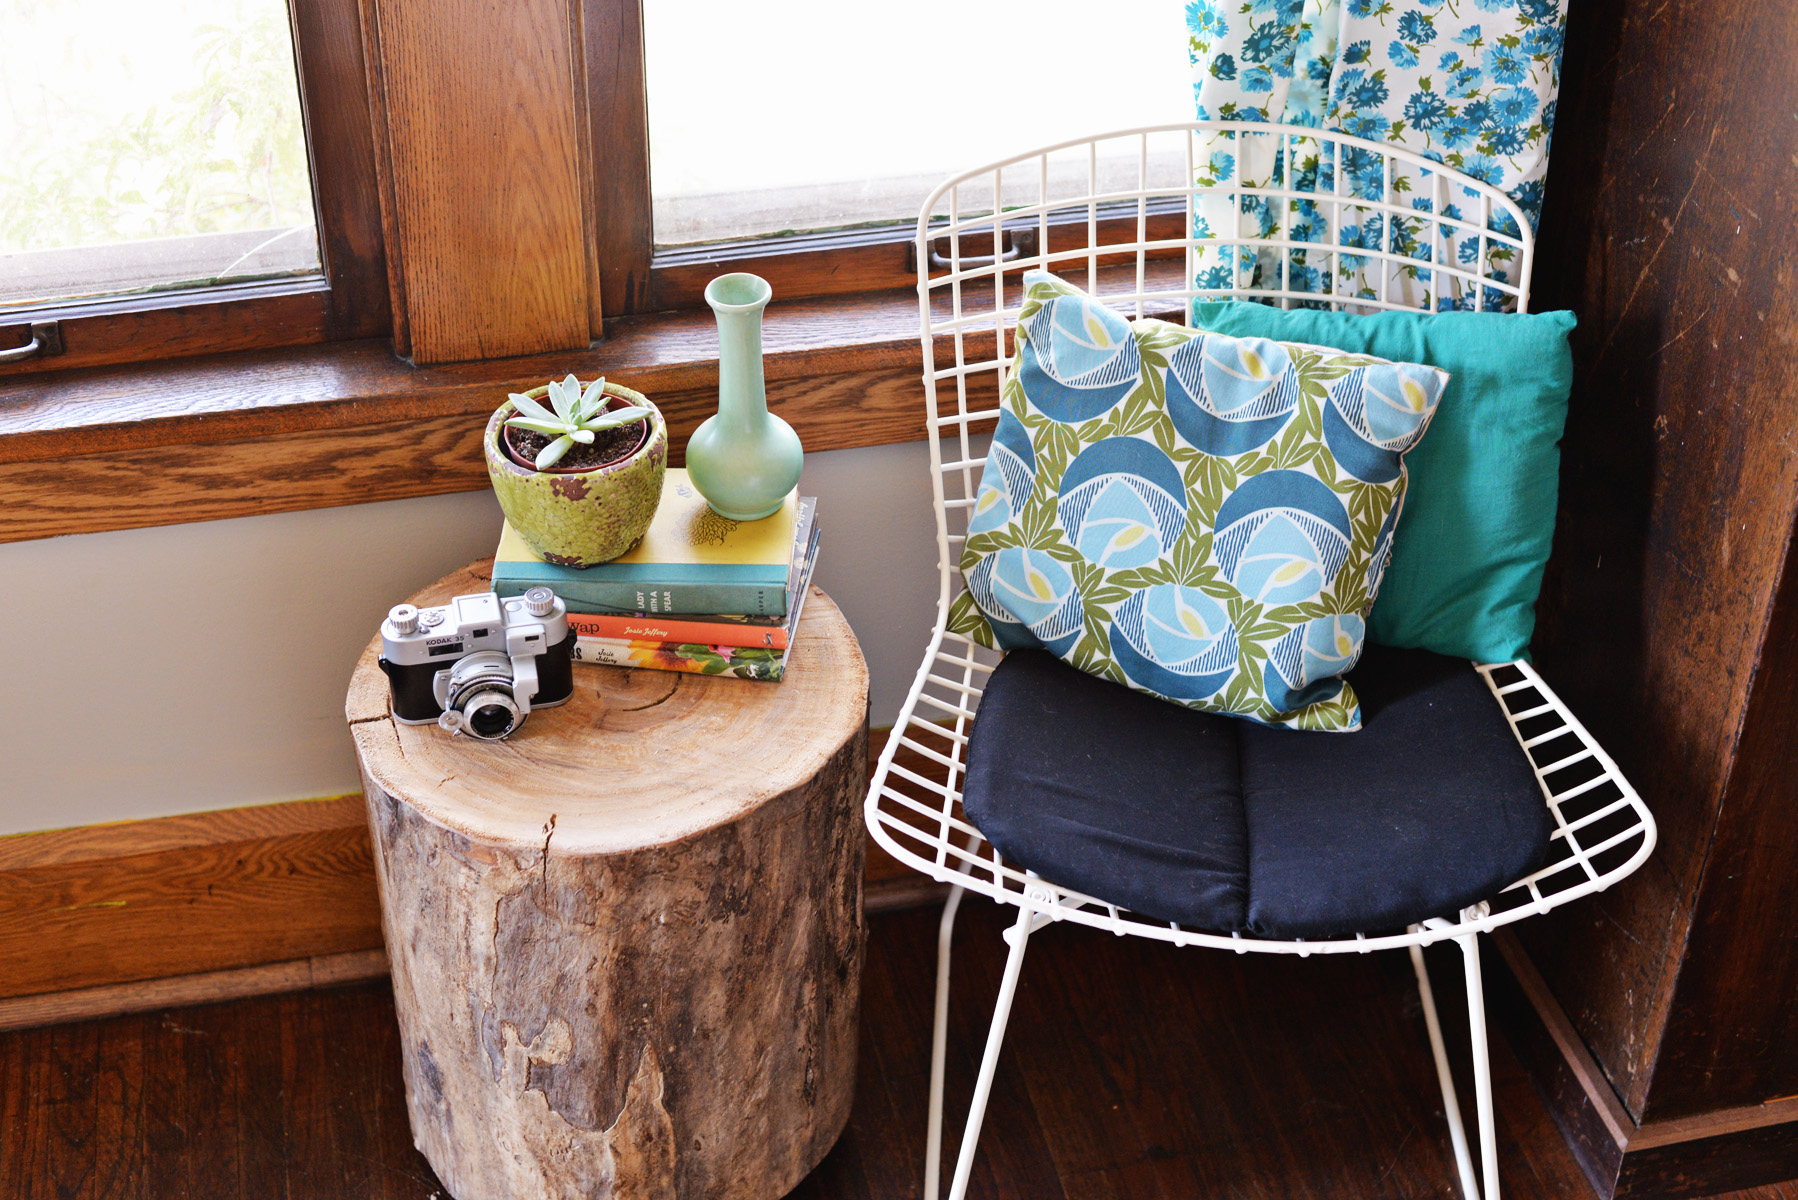 diy tree stump side table tutorial wood accent round sofa ceiling lamp shades cute bedside lamps pier target high top outside and chairs black cube end counter height dining